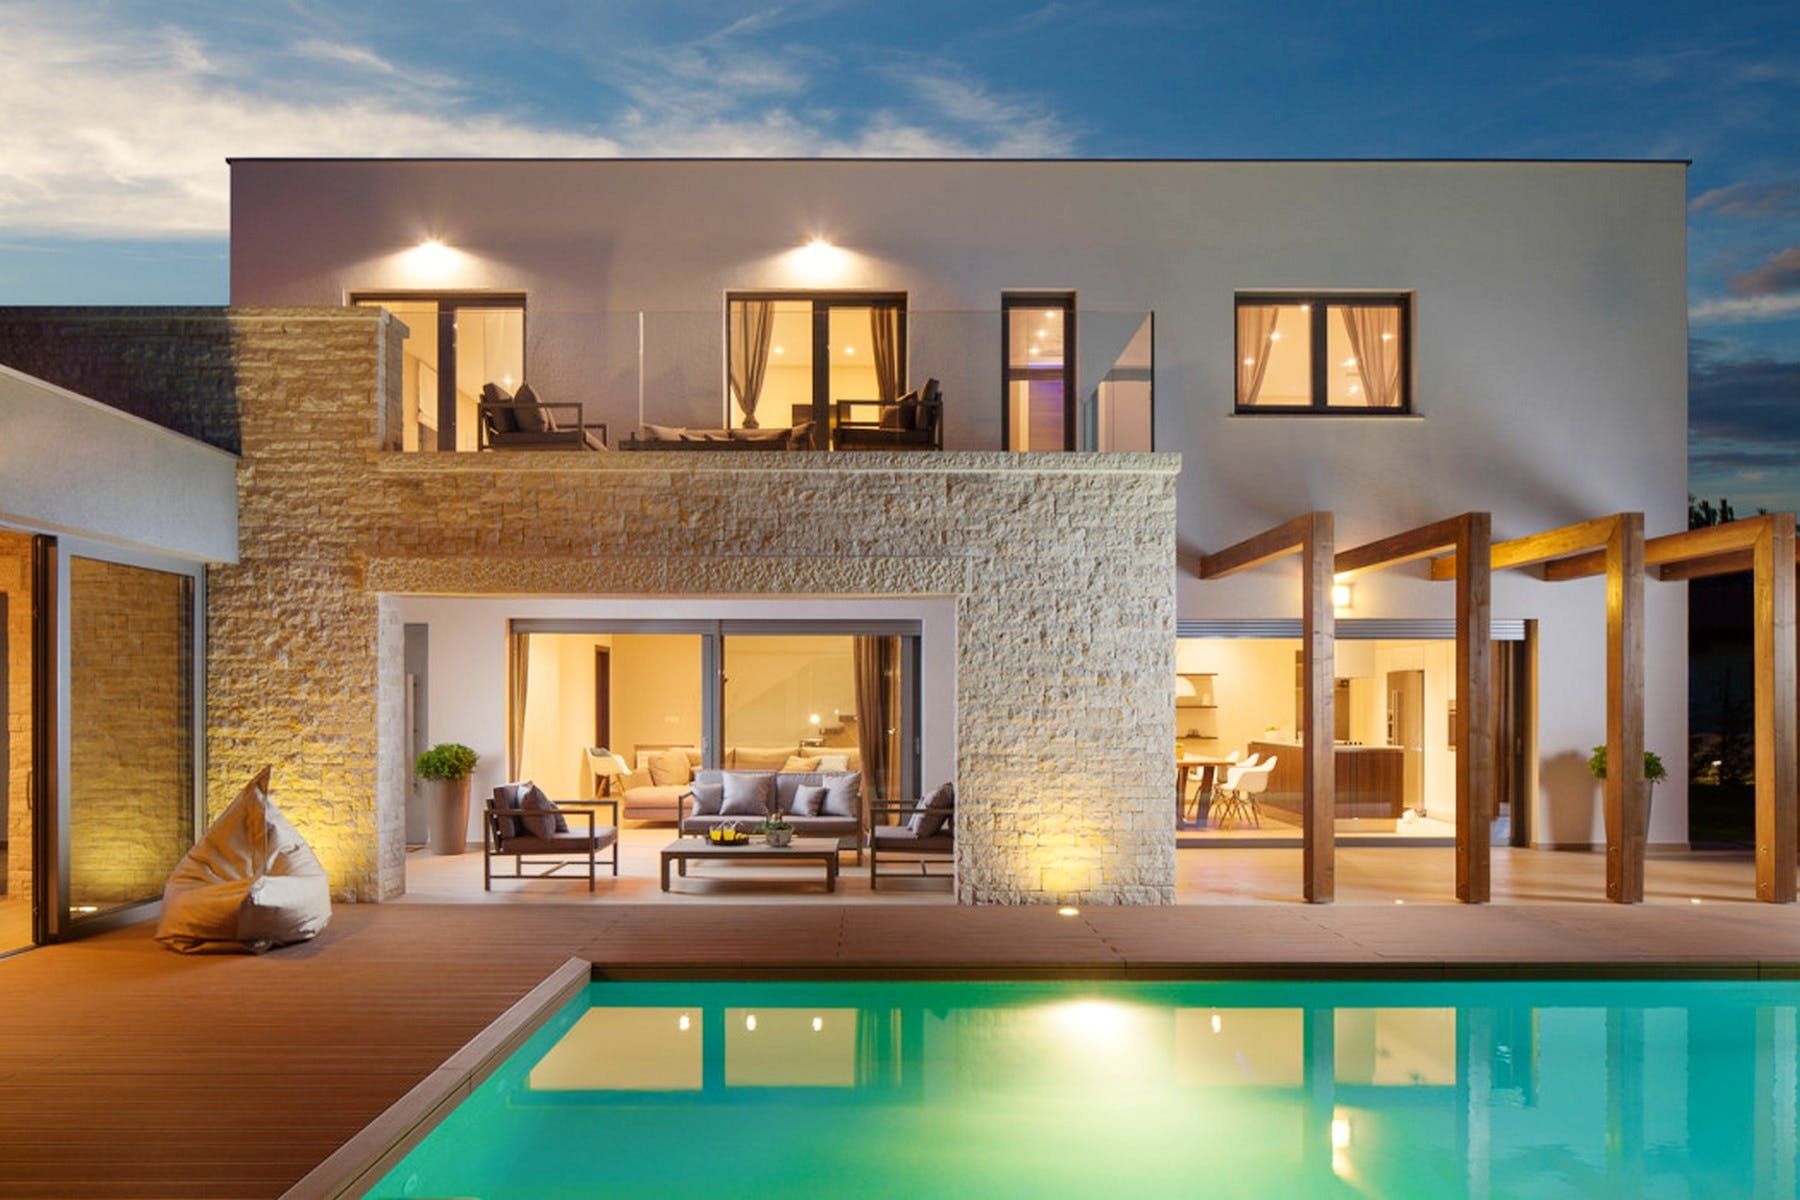 Night ambiance of the villa with swimming pool